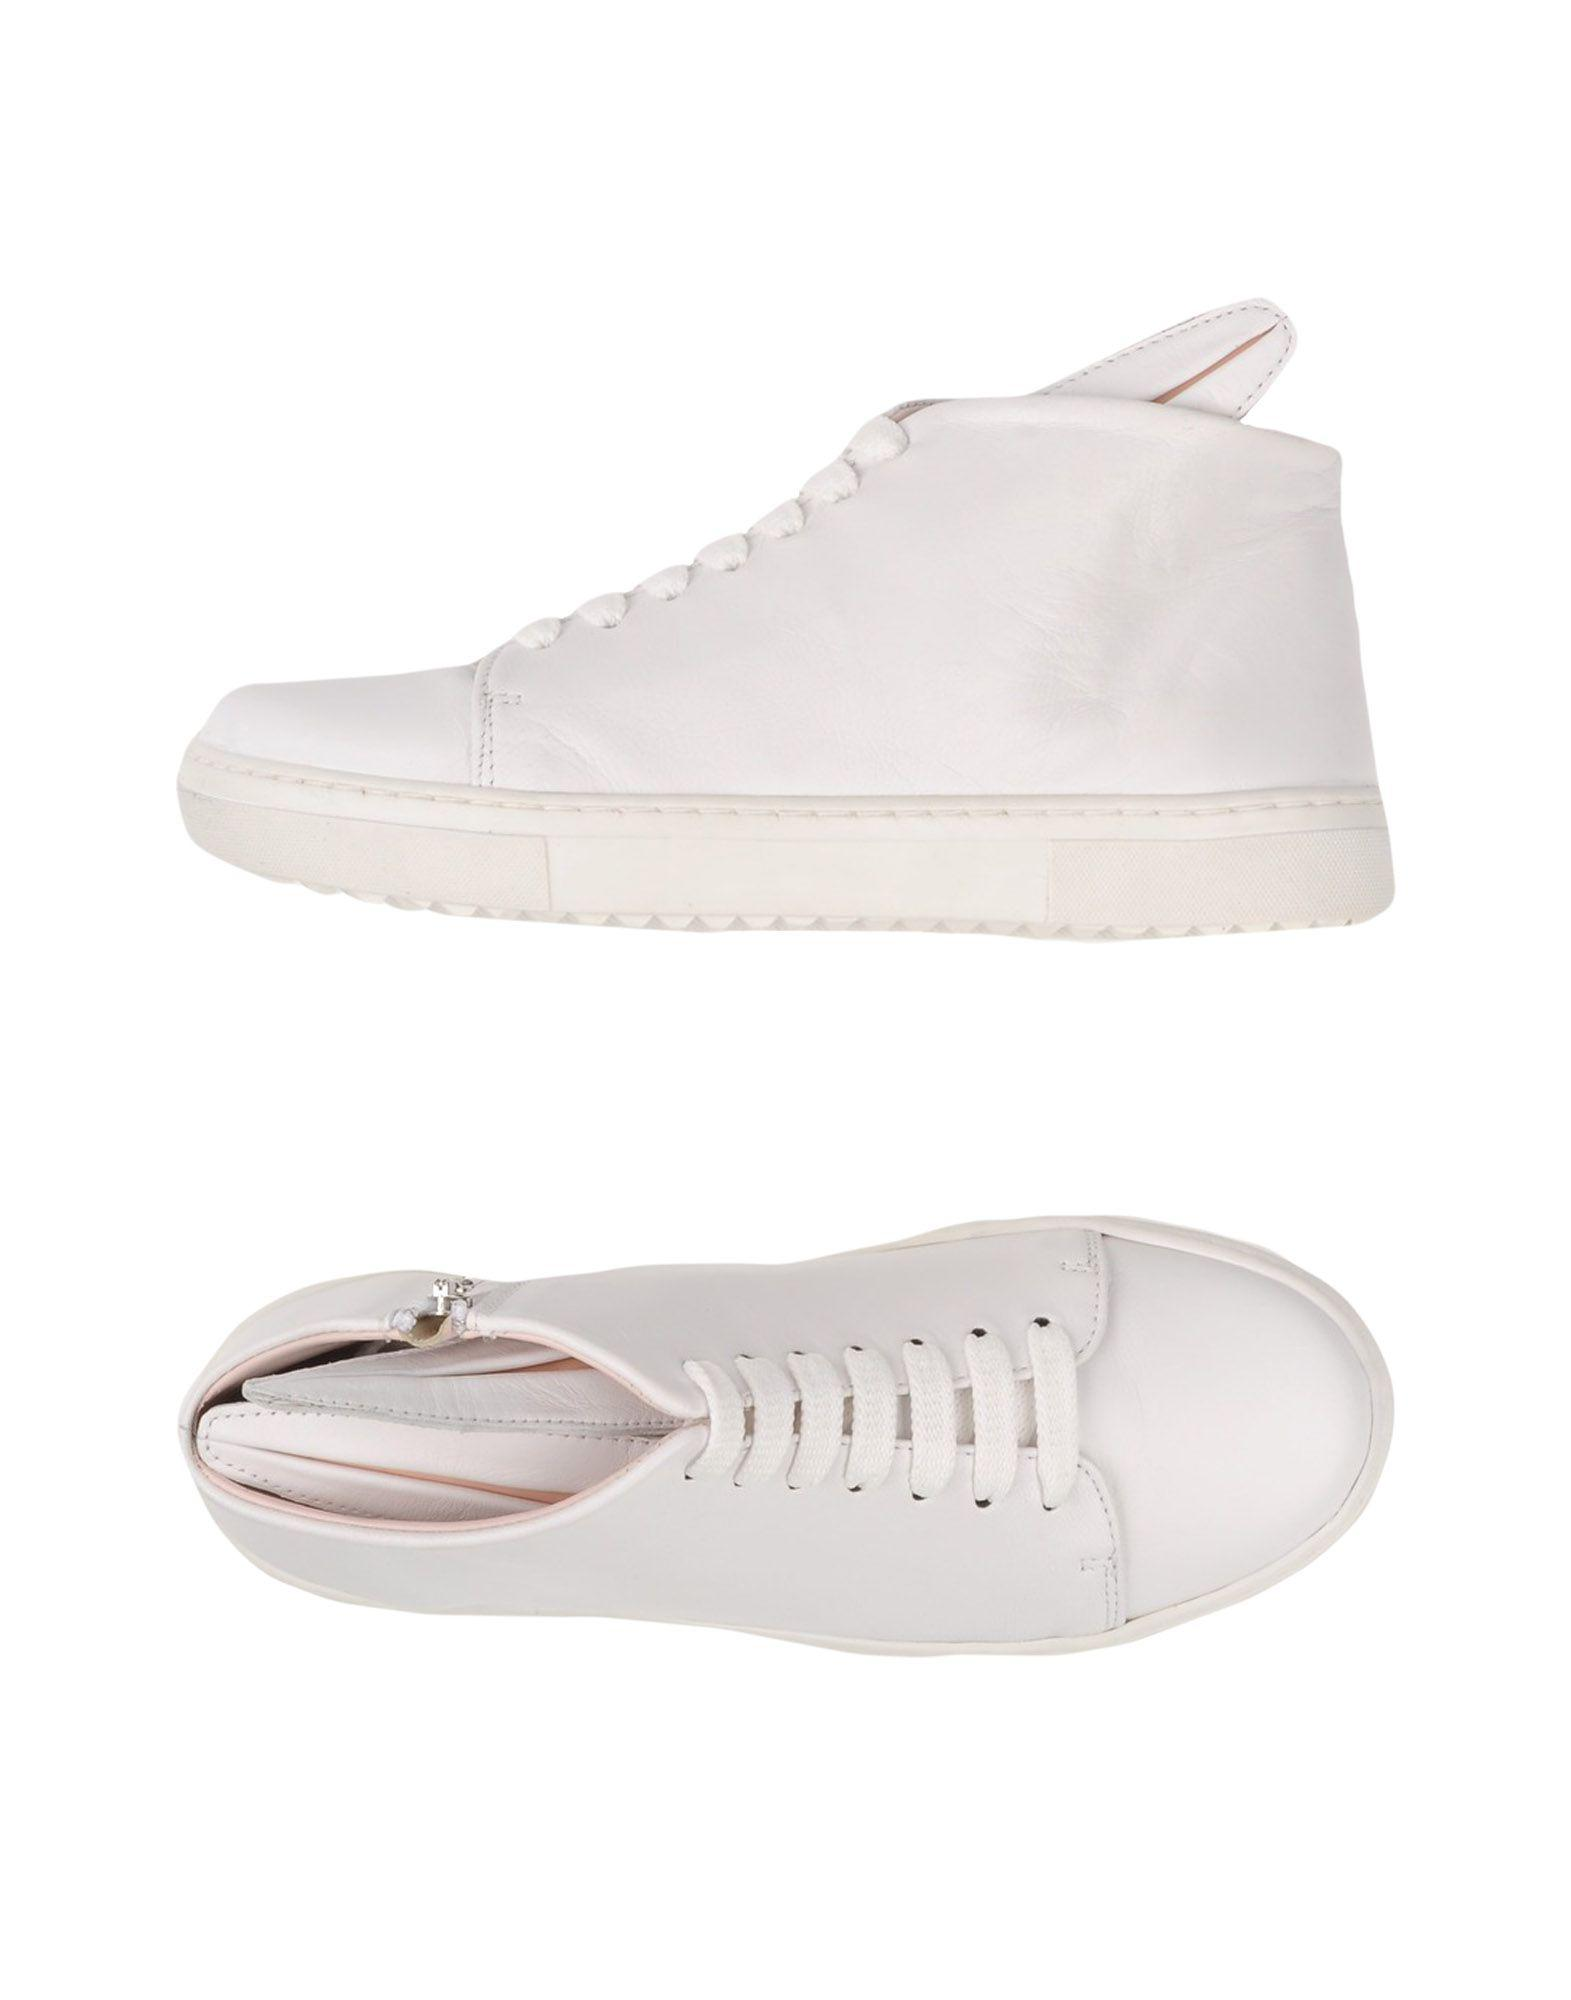 LOW TOP STAR GLITTER SNEAKER - FOOTWEAR - Low-tops & sneakers Minna Parikka b6zweUa